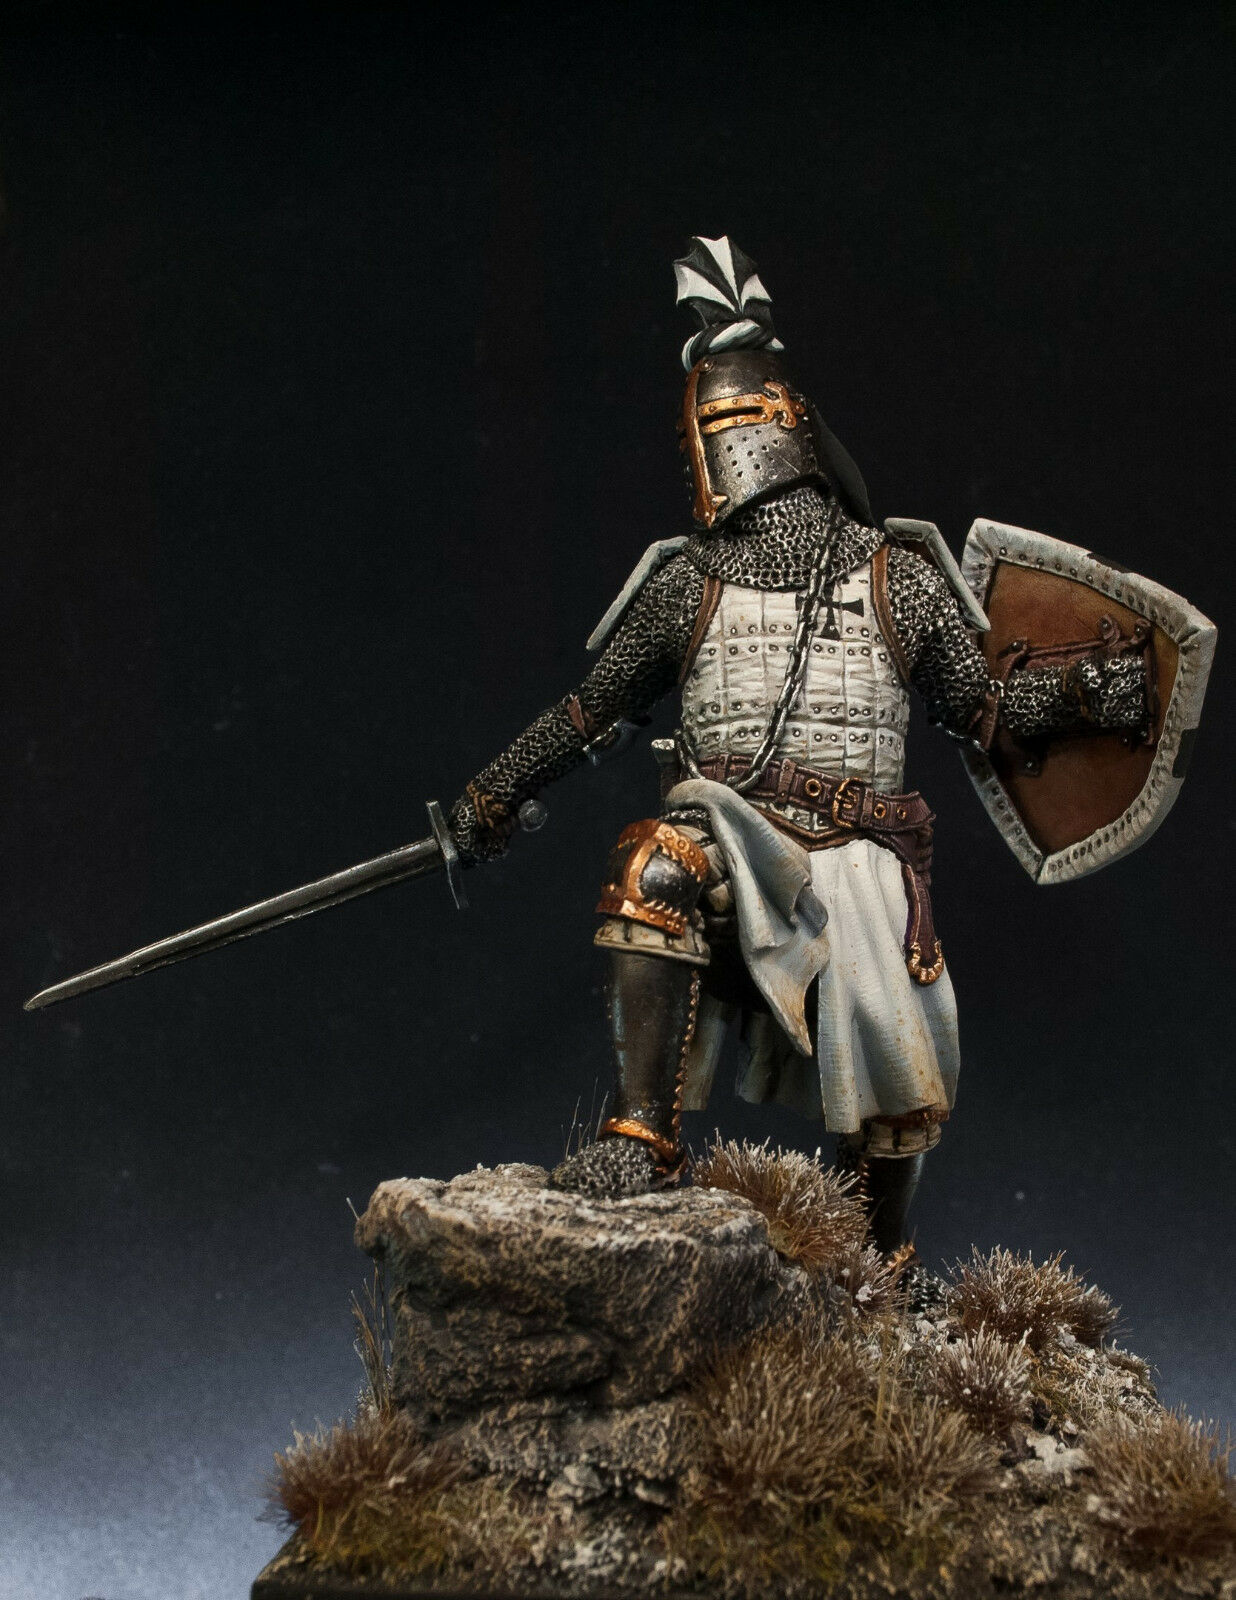 Resin Soldier, Museum, Teutonic Knight, Crusader, Warrior, Catholic Order, 75mm